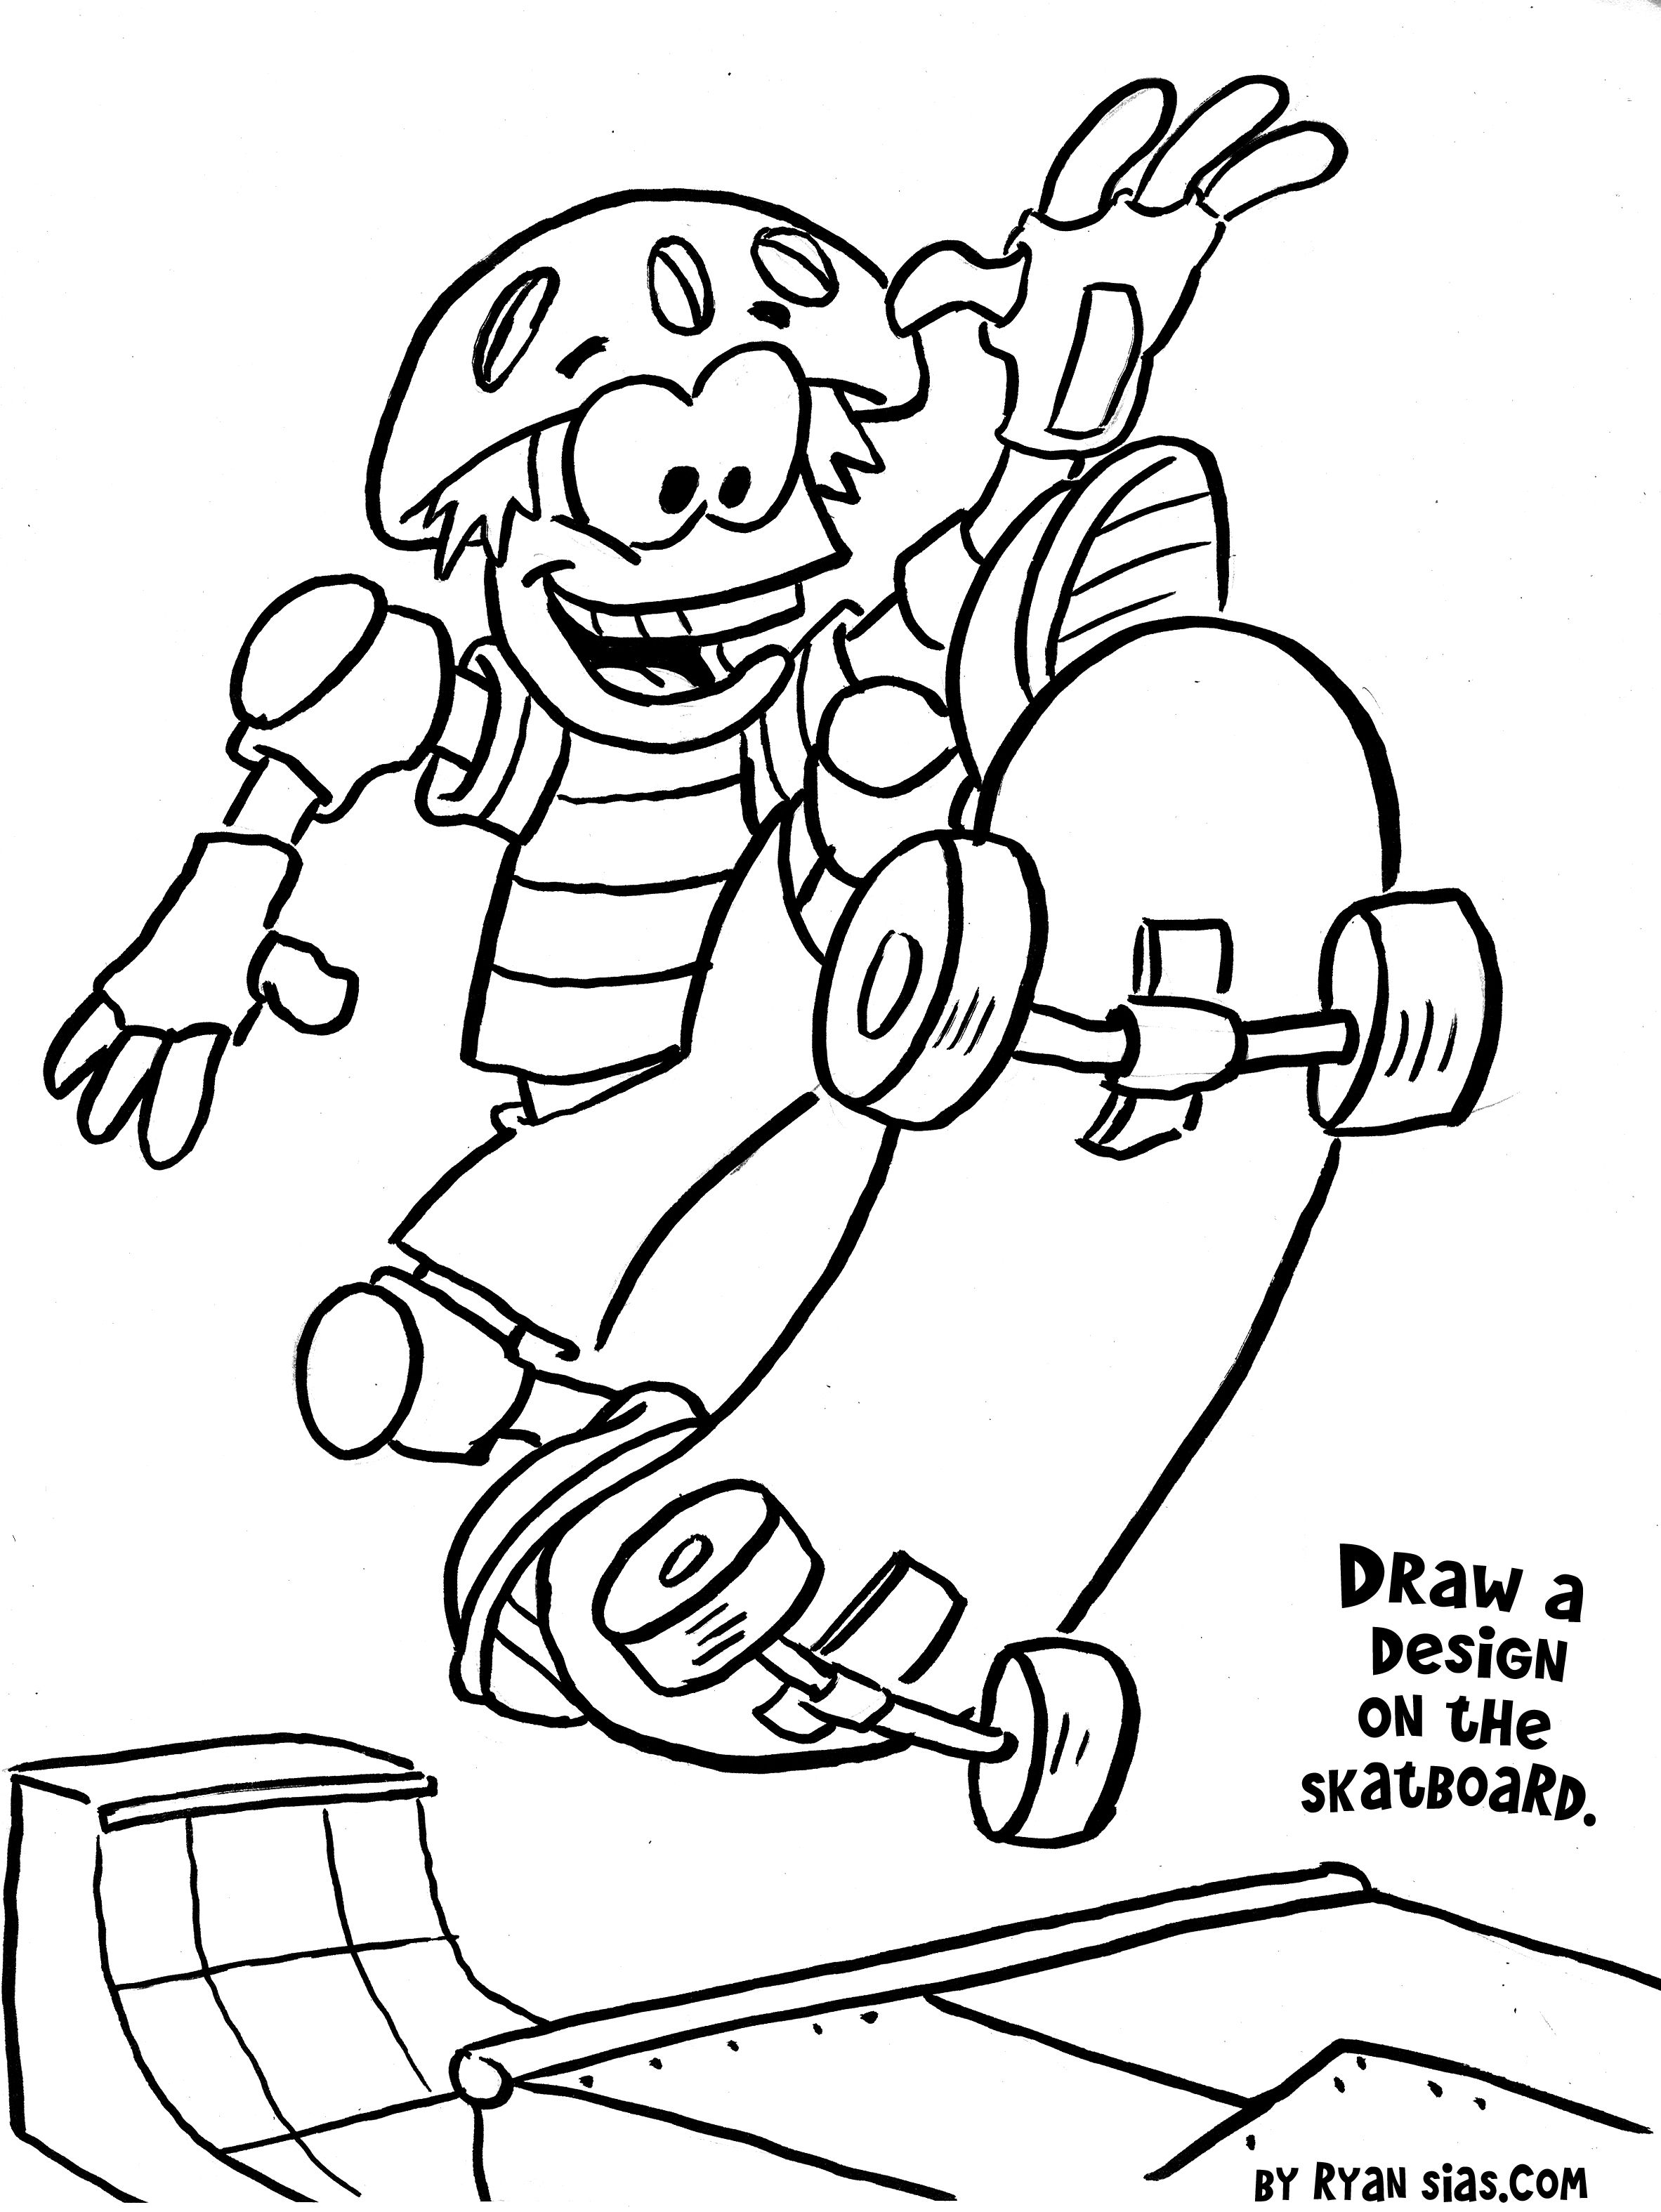 Free Printable Sports Coloring Pages Skateboard Sports Coloring